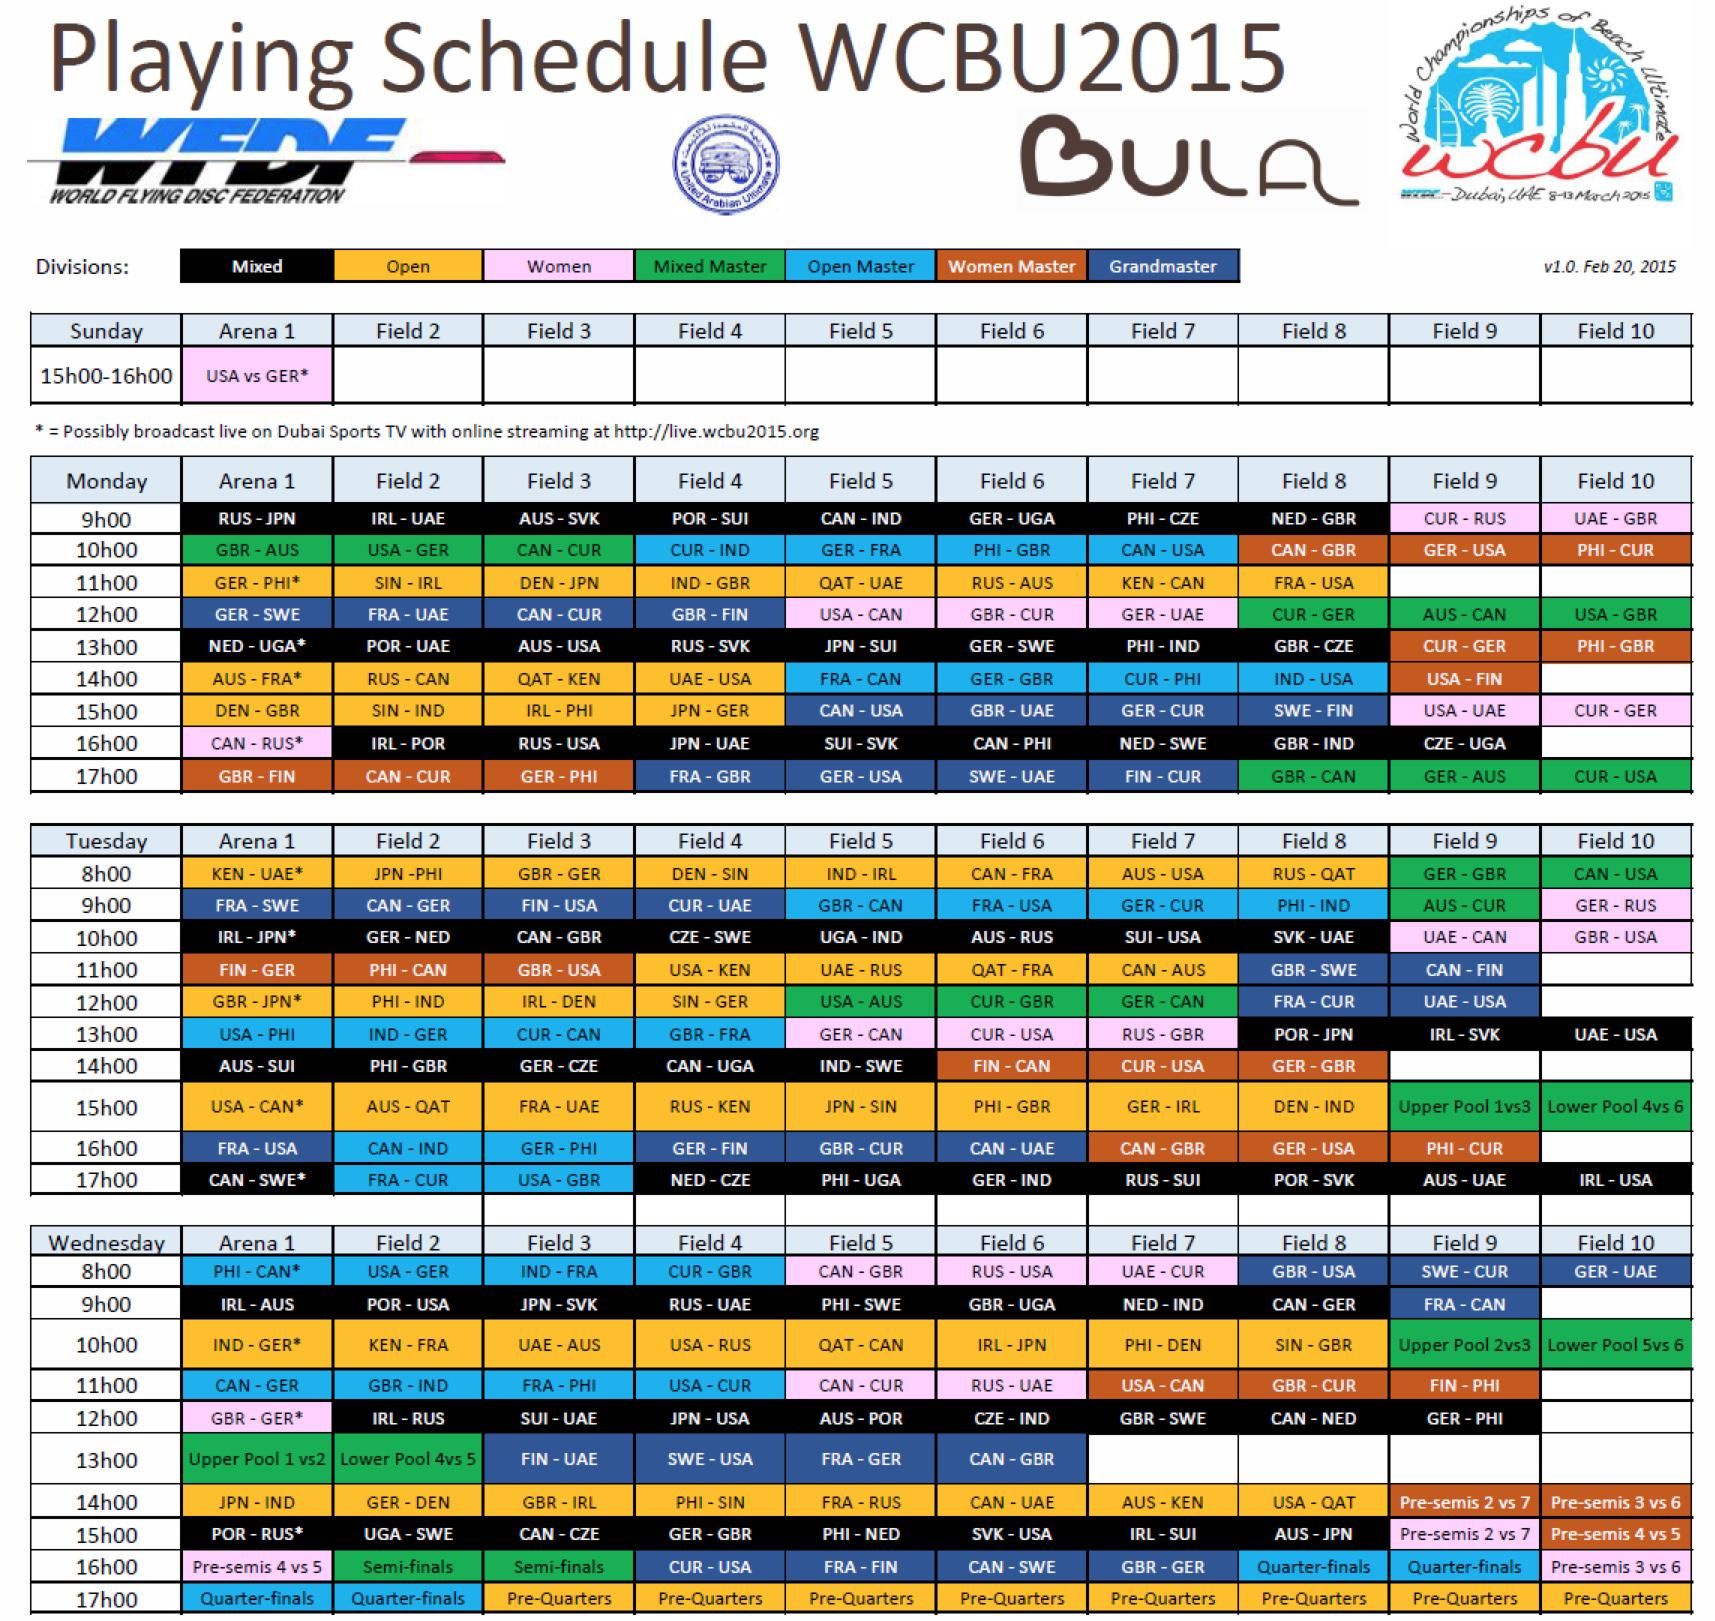 Looks like the @WCBU2015 schedule is up!  #BeachUltimate #Dubai #USAUSAUSA http://t.co/HNueR7kFyy <a href='http://twitter.com/Goose00Helton/status/568791377271631873/photo/1' target='_blank'>See original &raquo;</a>